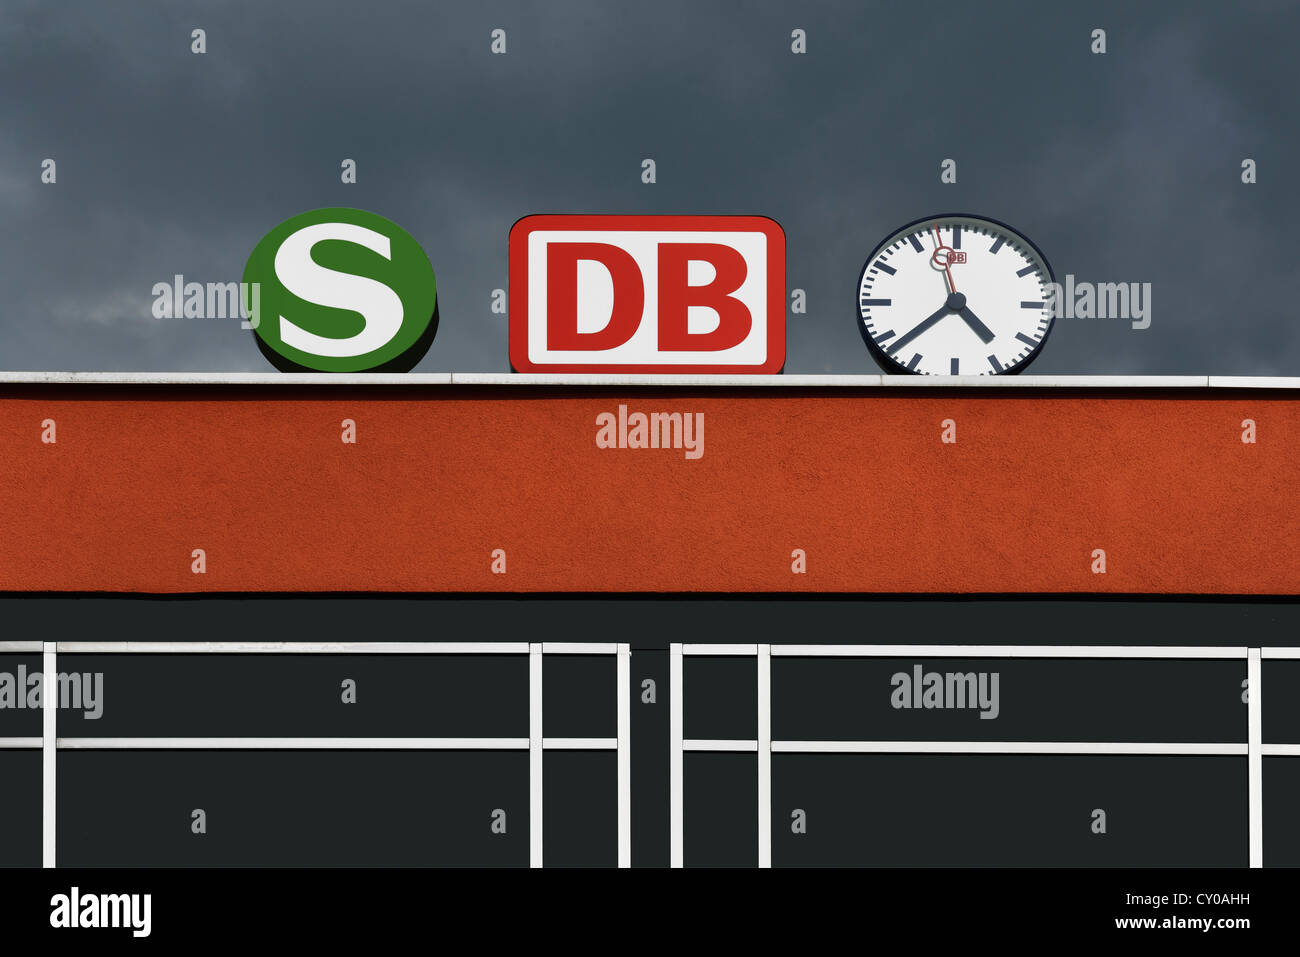 Logos of the S-Bahn commuter railway and the Deutsche Bahn federal railway beside a clock, combined public transport Stock Photo